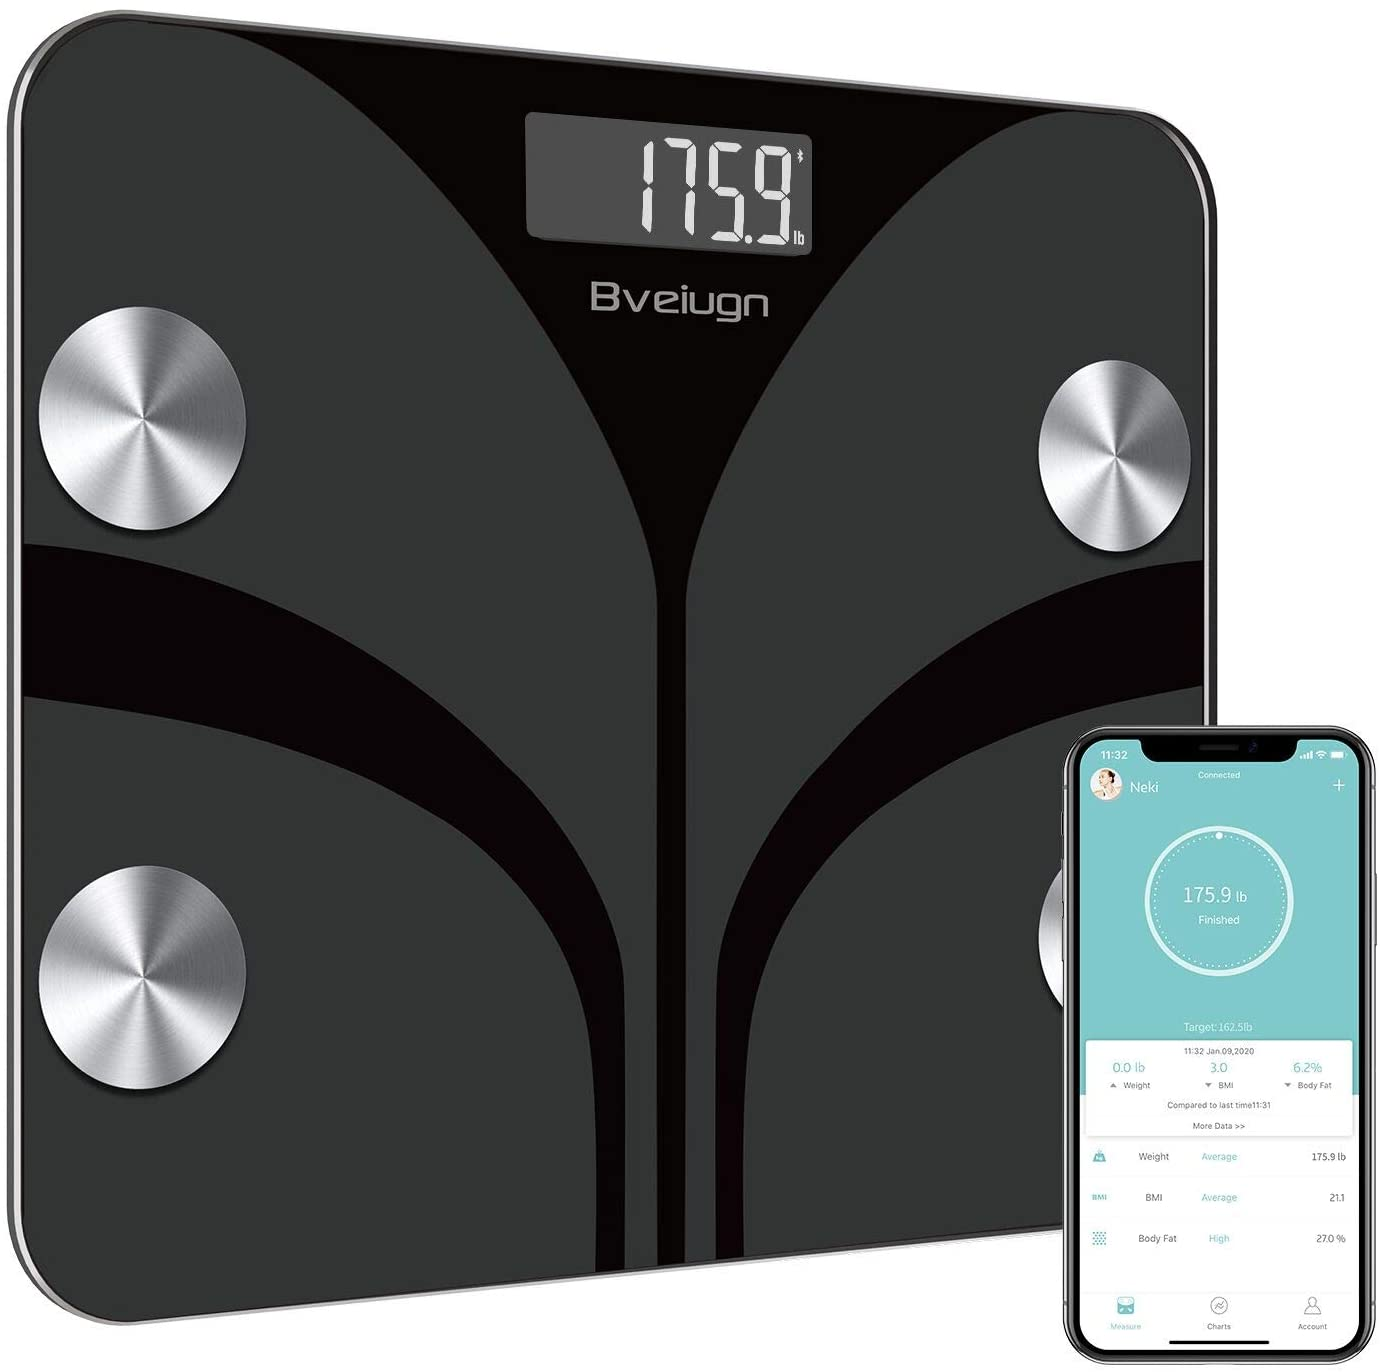 Posture Body Fat Scale